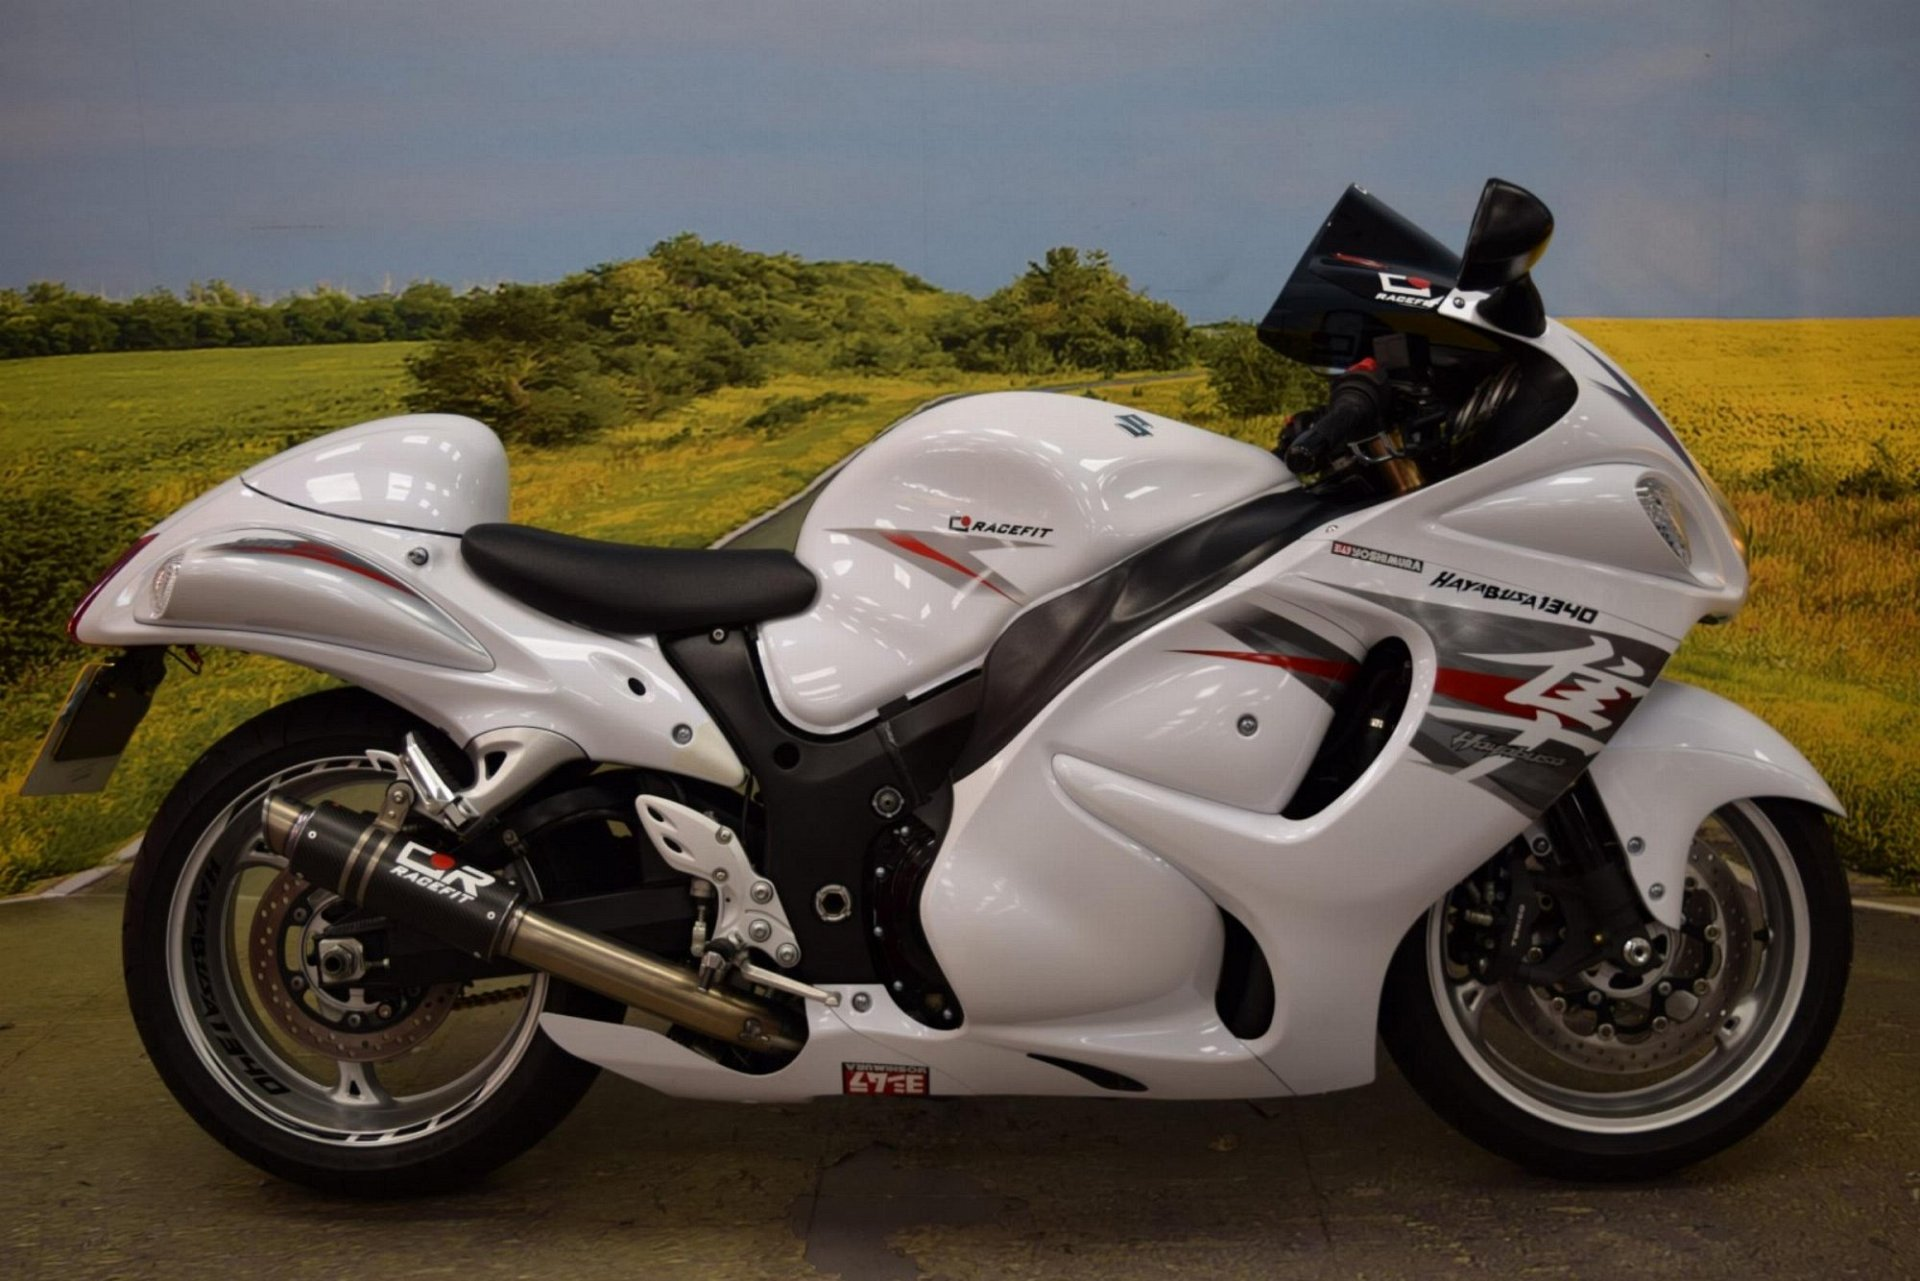 2012 Suzuki Hayabusa GSX 1300 R for sale in Staffordshire